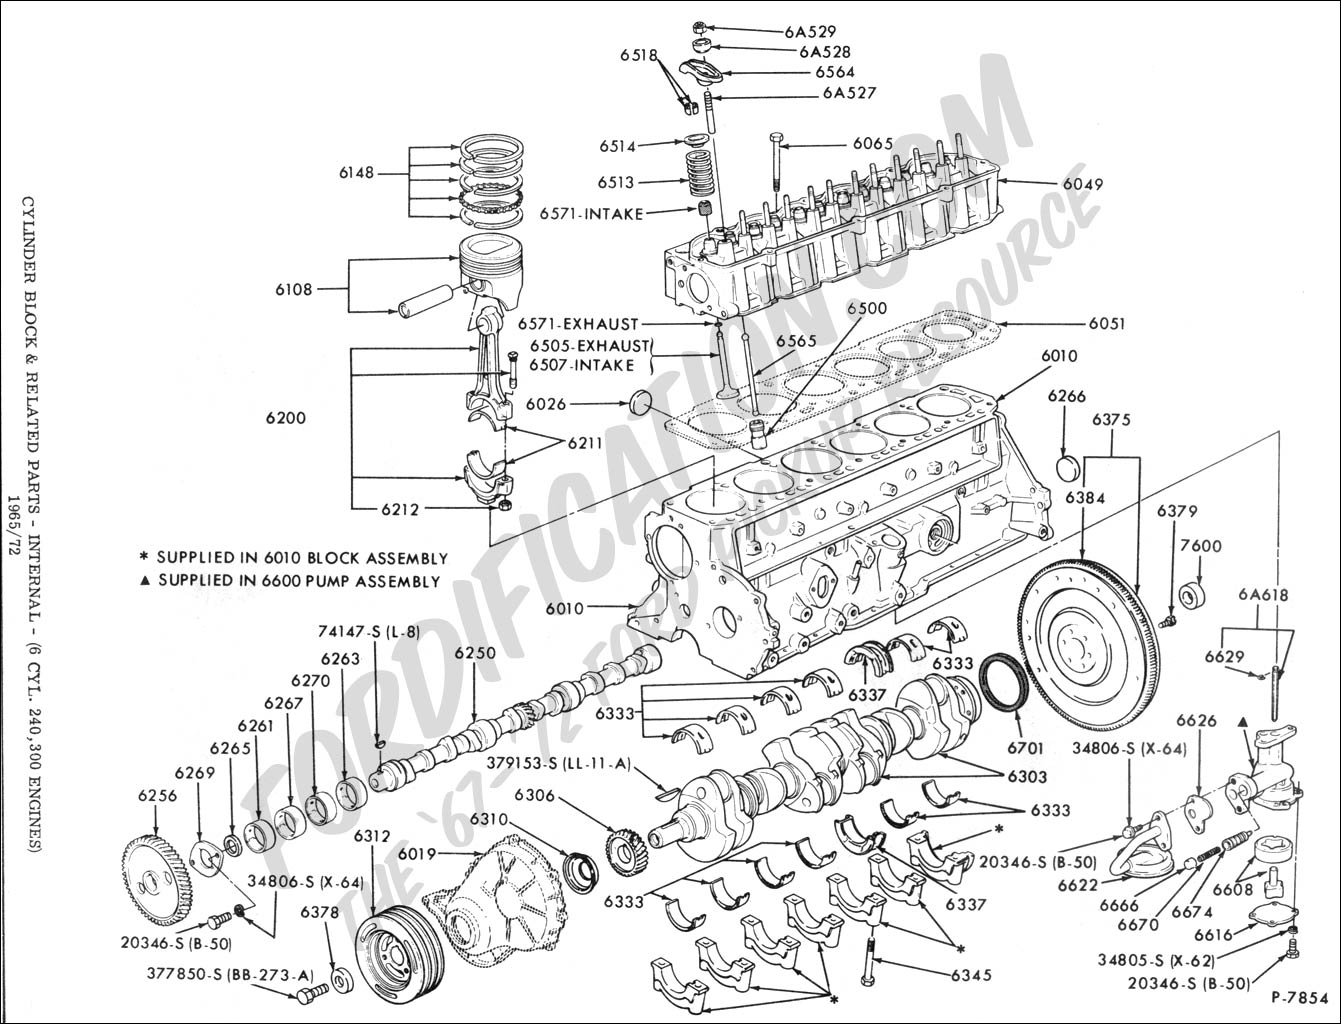 traverse wiring diagram with 1966 Mustang 289 Wiring Diagram on Showthread additionally 1966 Mustang 289 Wiring Diagram besides Impala Windshield Wiper Fuse Location together with Hhr Crank Position Sensor Location additionally T6189220 Diagram firing order.